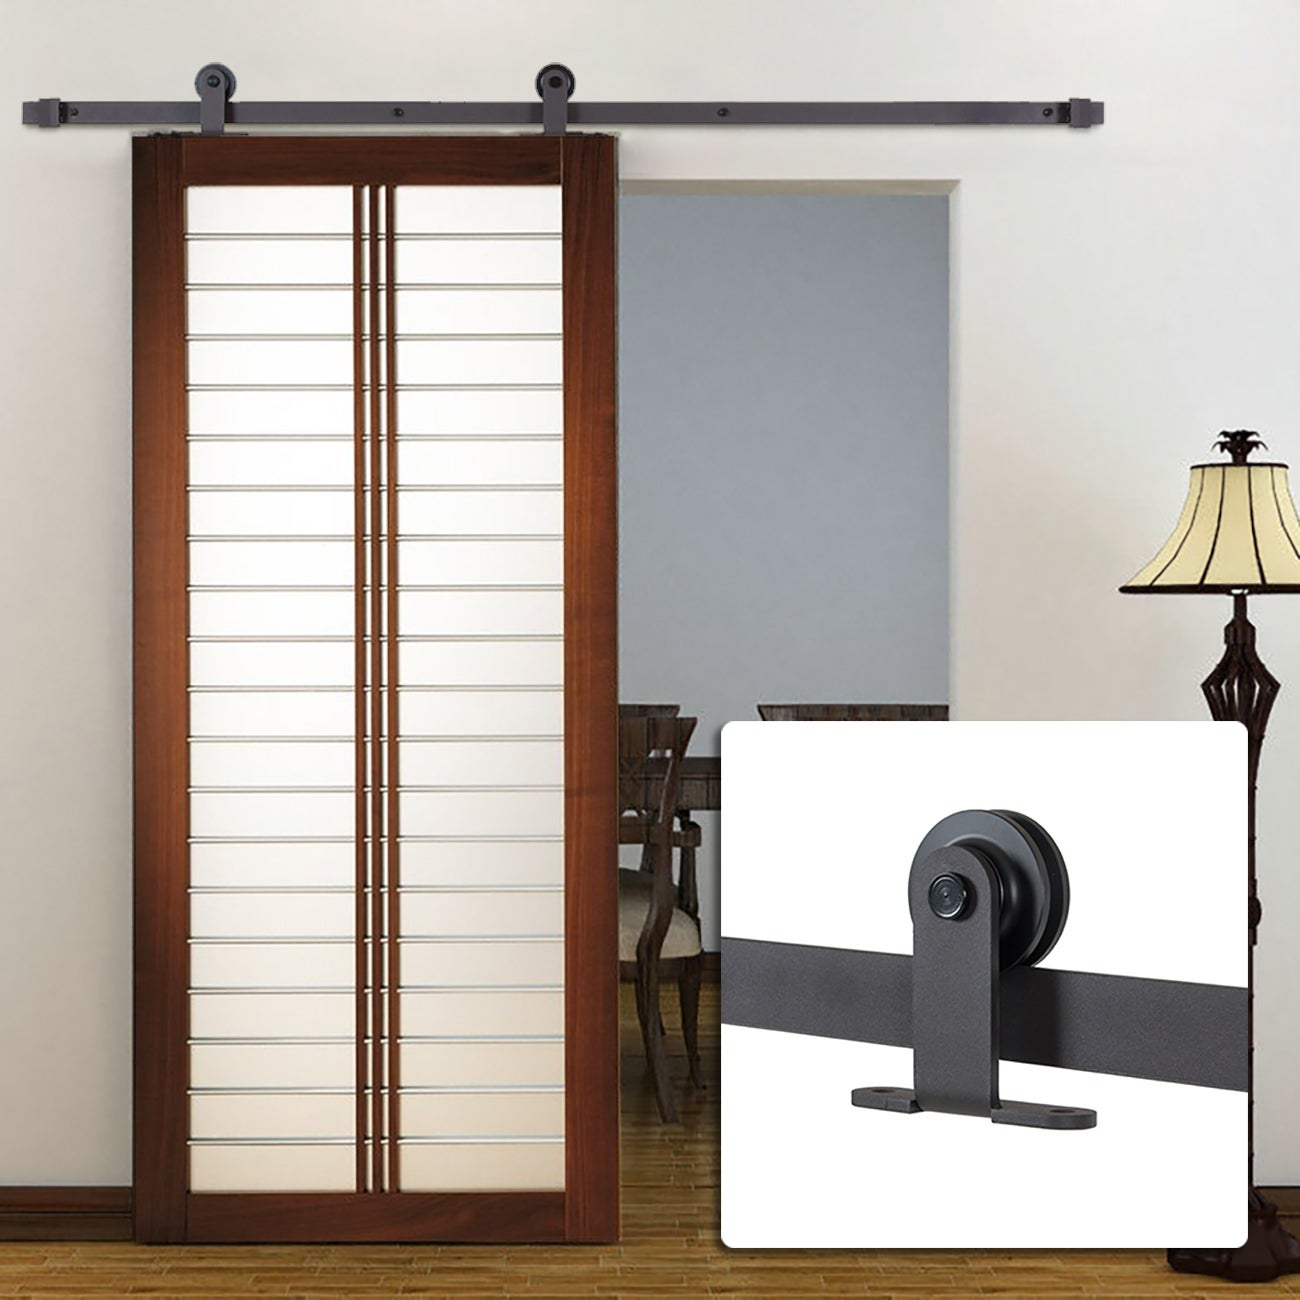 Belleze 6ft Modern Style European Barn Roller Sliding Closet Door Hardware Frosted Black Free Shipping Today 15979240